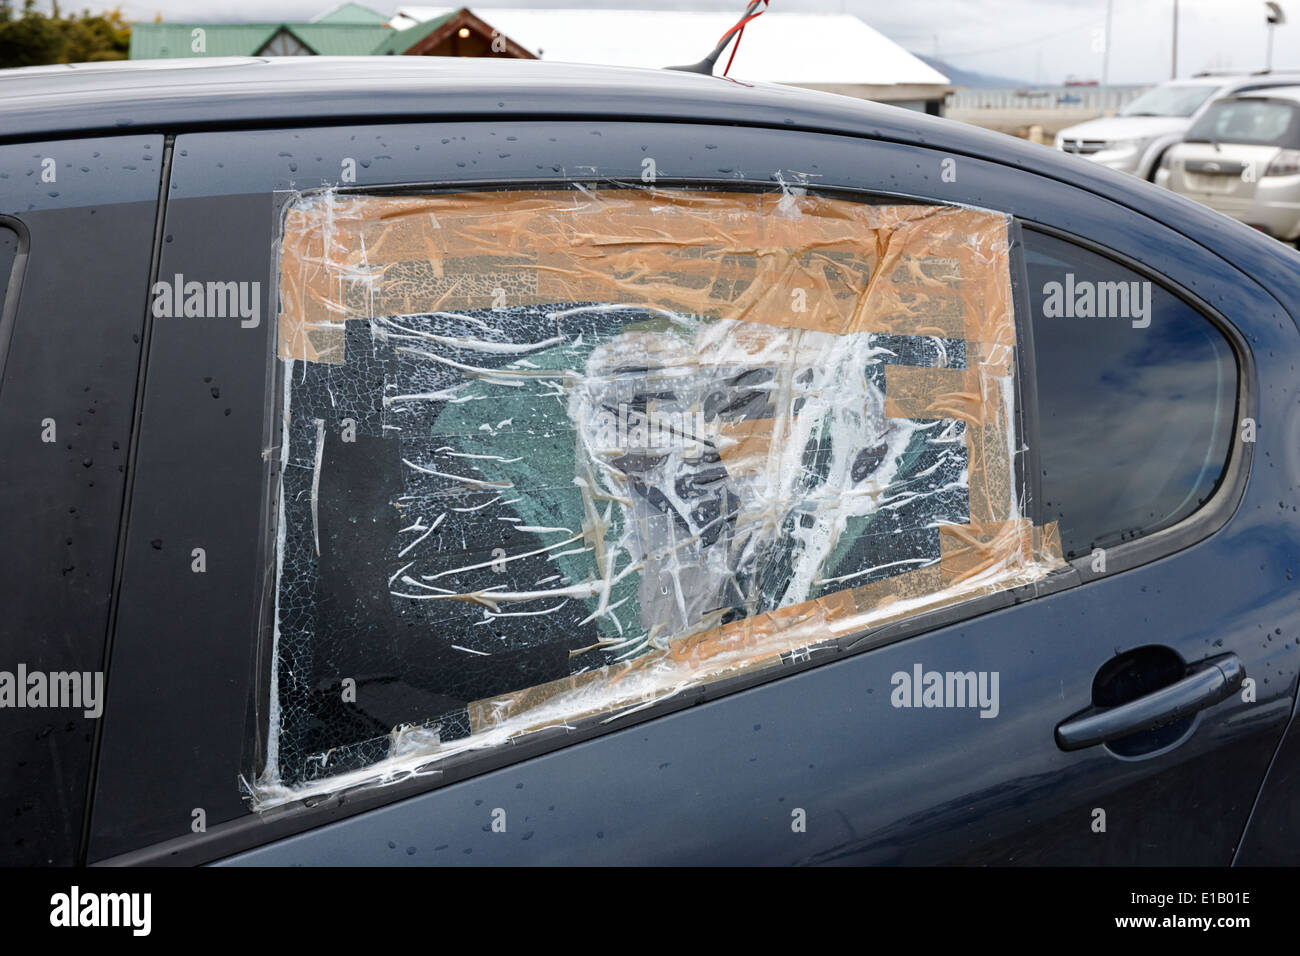 Broken Car Window Stock Photos Broken Car Window Stock Images Alamy